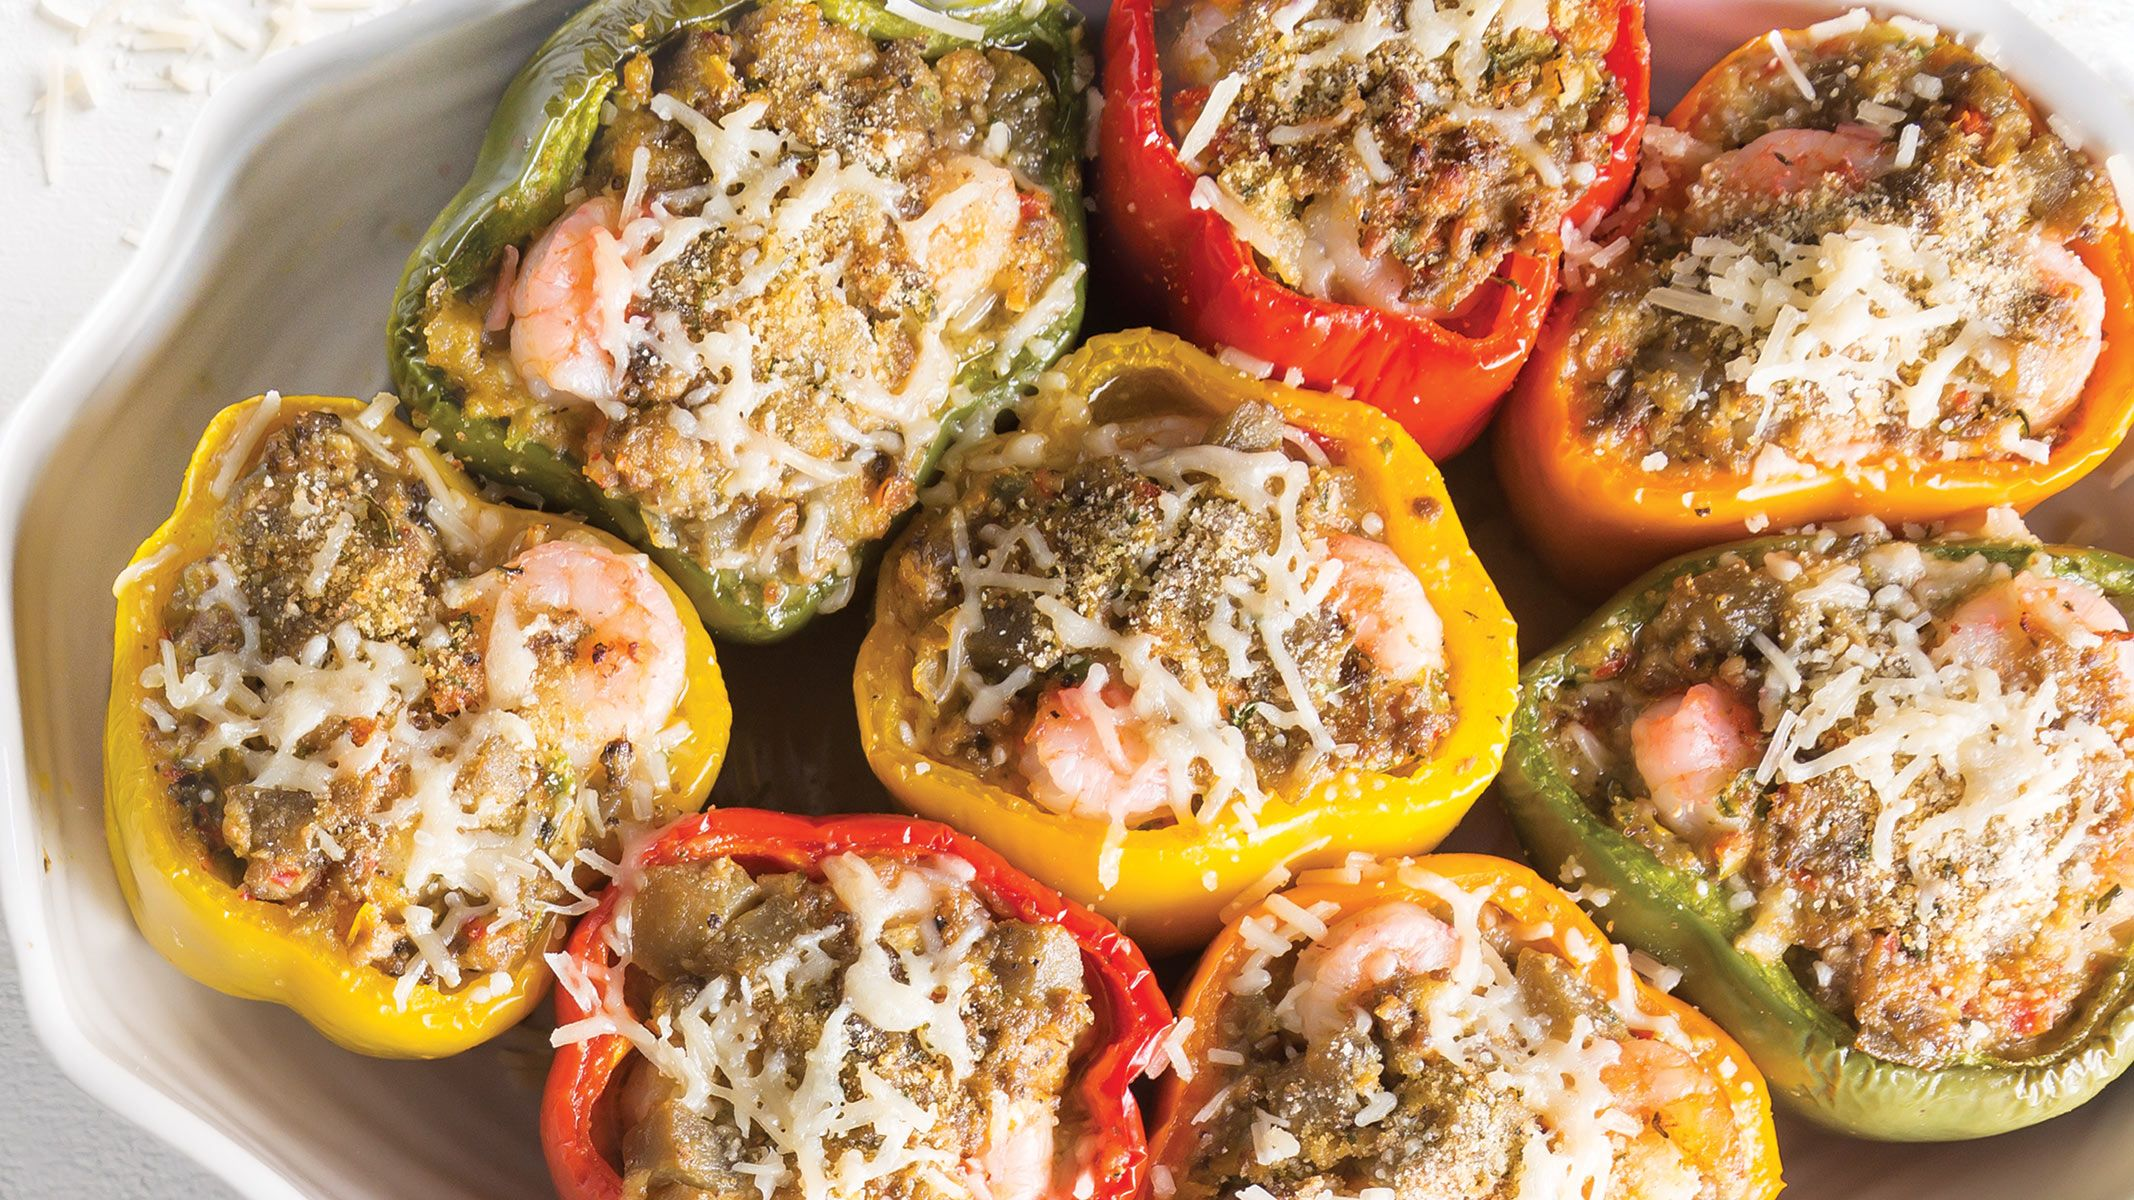 Chef John Folse S Eggplant Stuffed Bell Peppers With River Shrimp Recipe Stuffed Peppers Stuffed Bell Peppers Chef John Folse